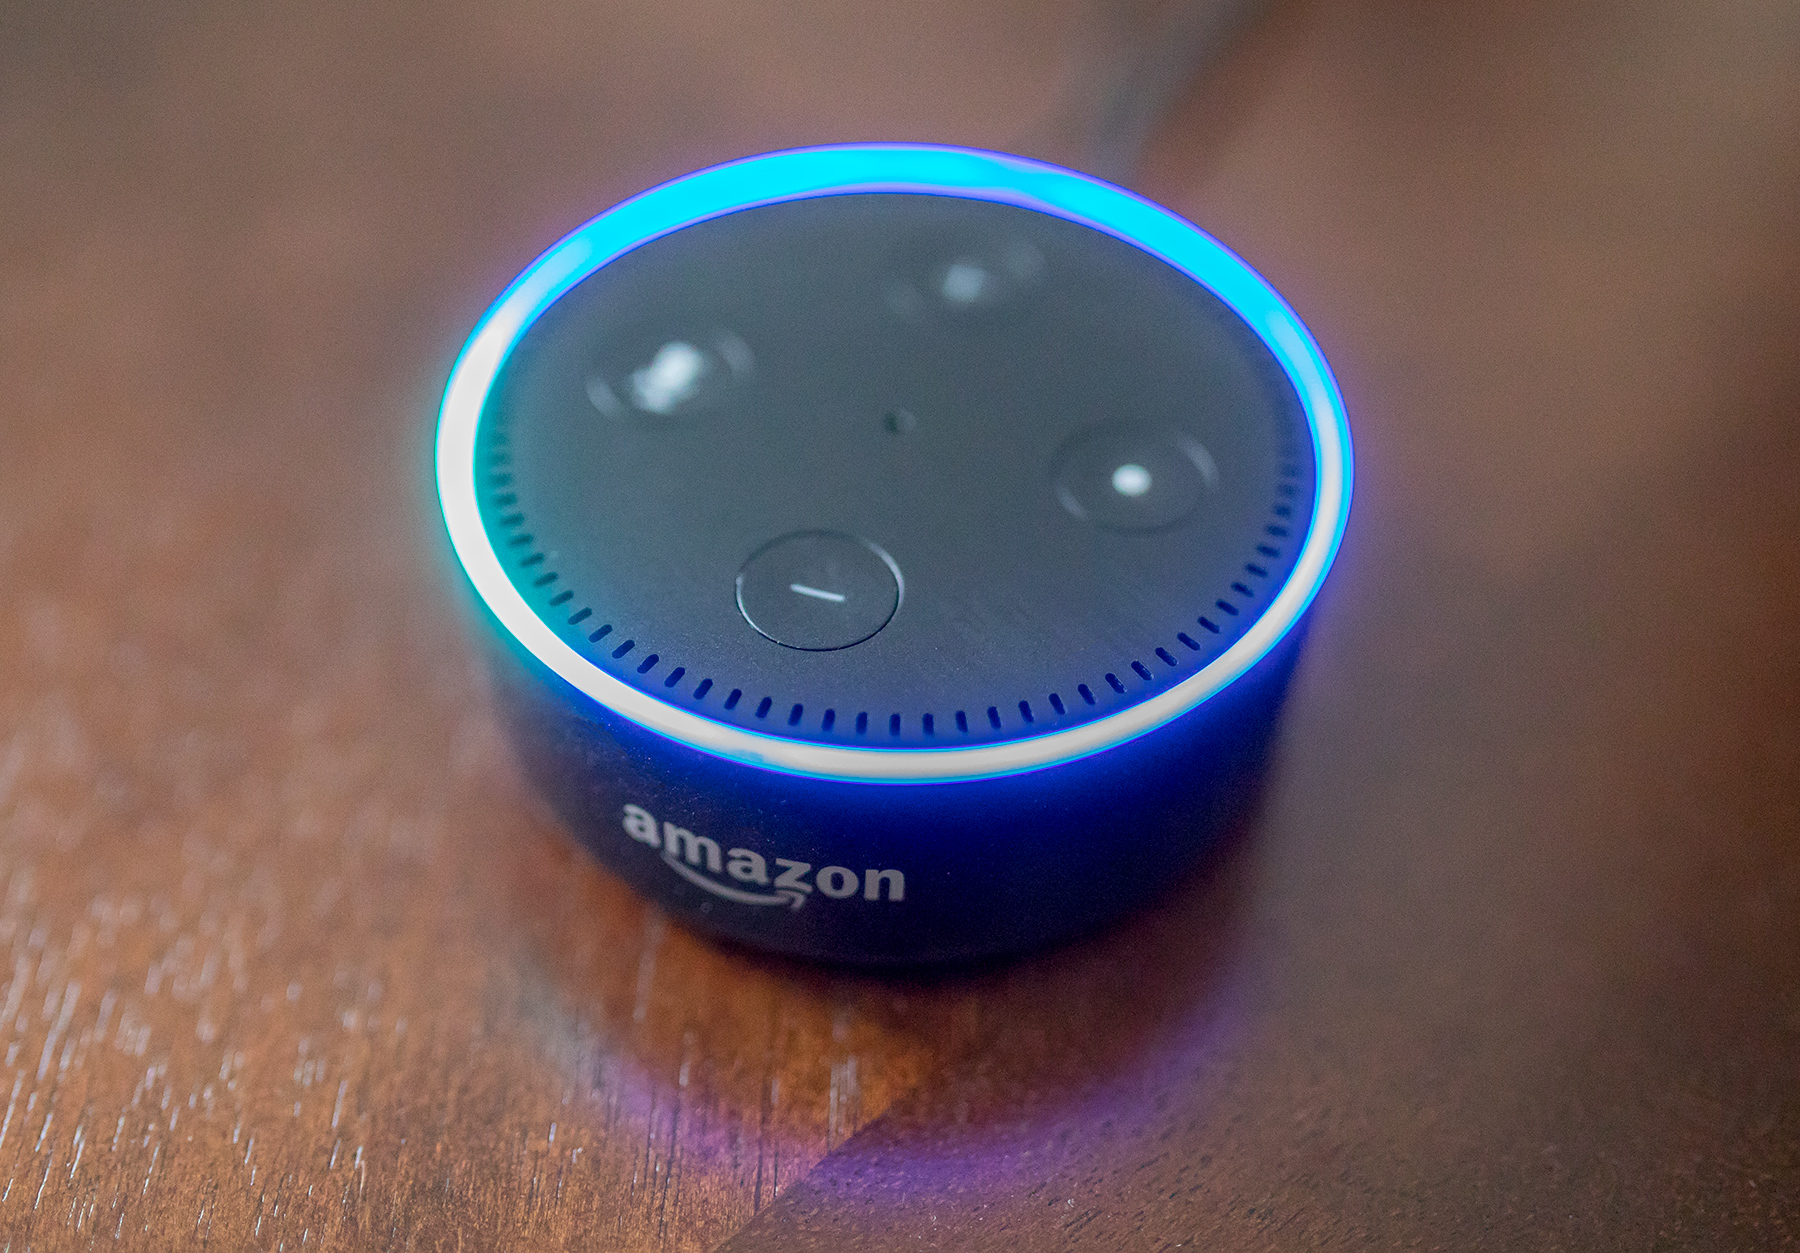 Alexa Replaces Some Spoken Responses With Beeps